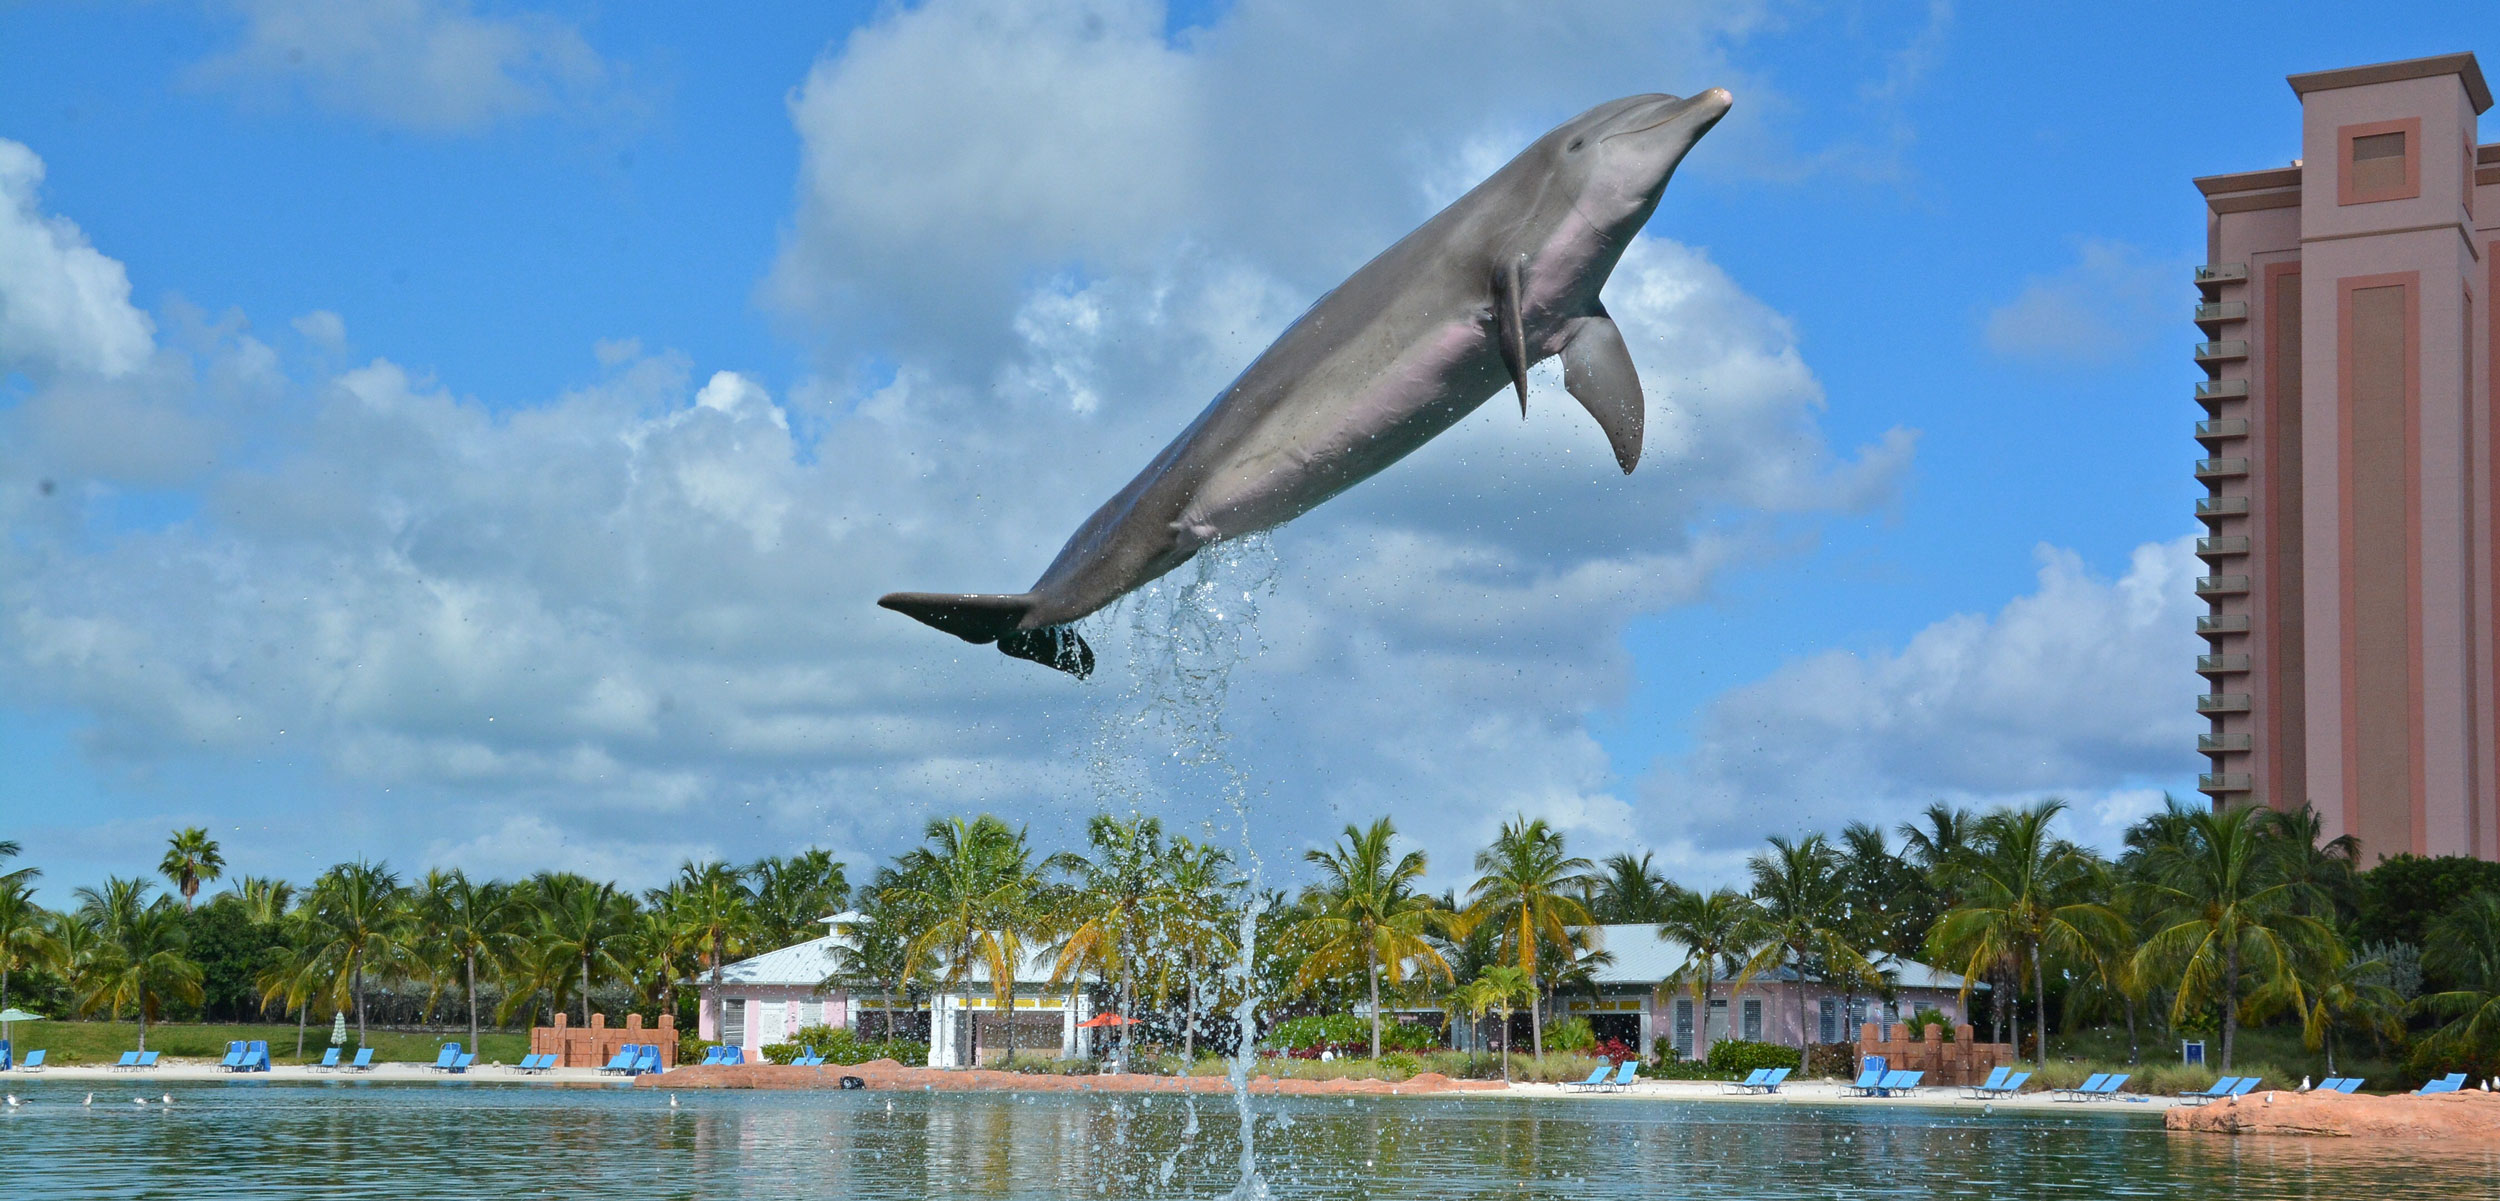 kelly the dolphin jumping out of the water at Atlantis